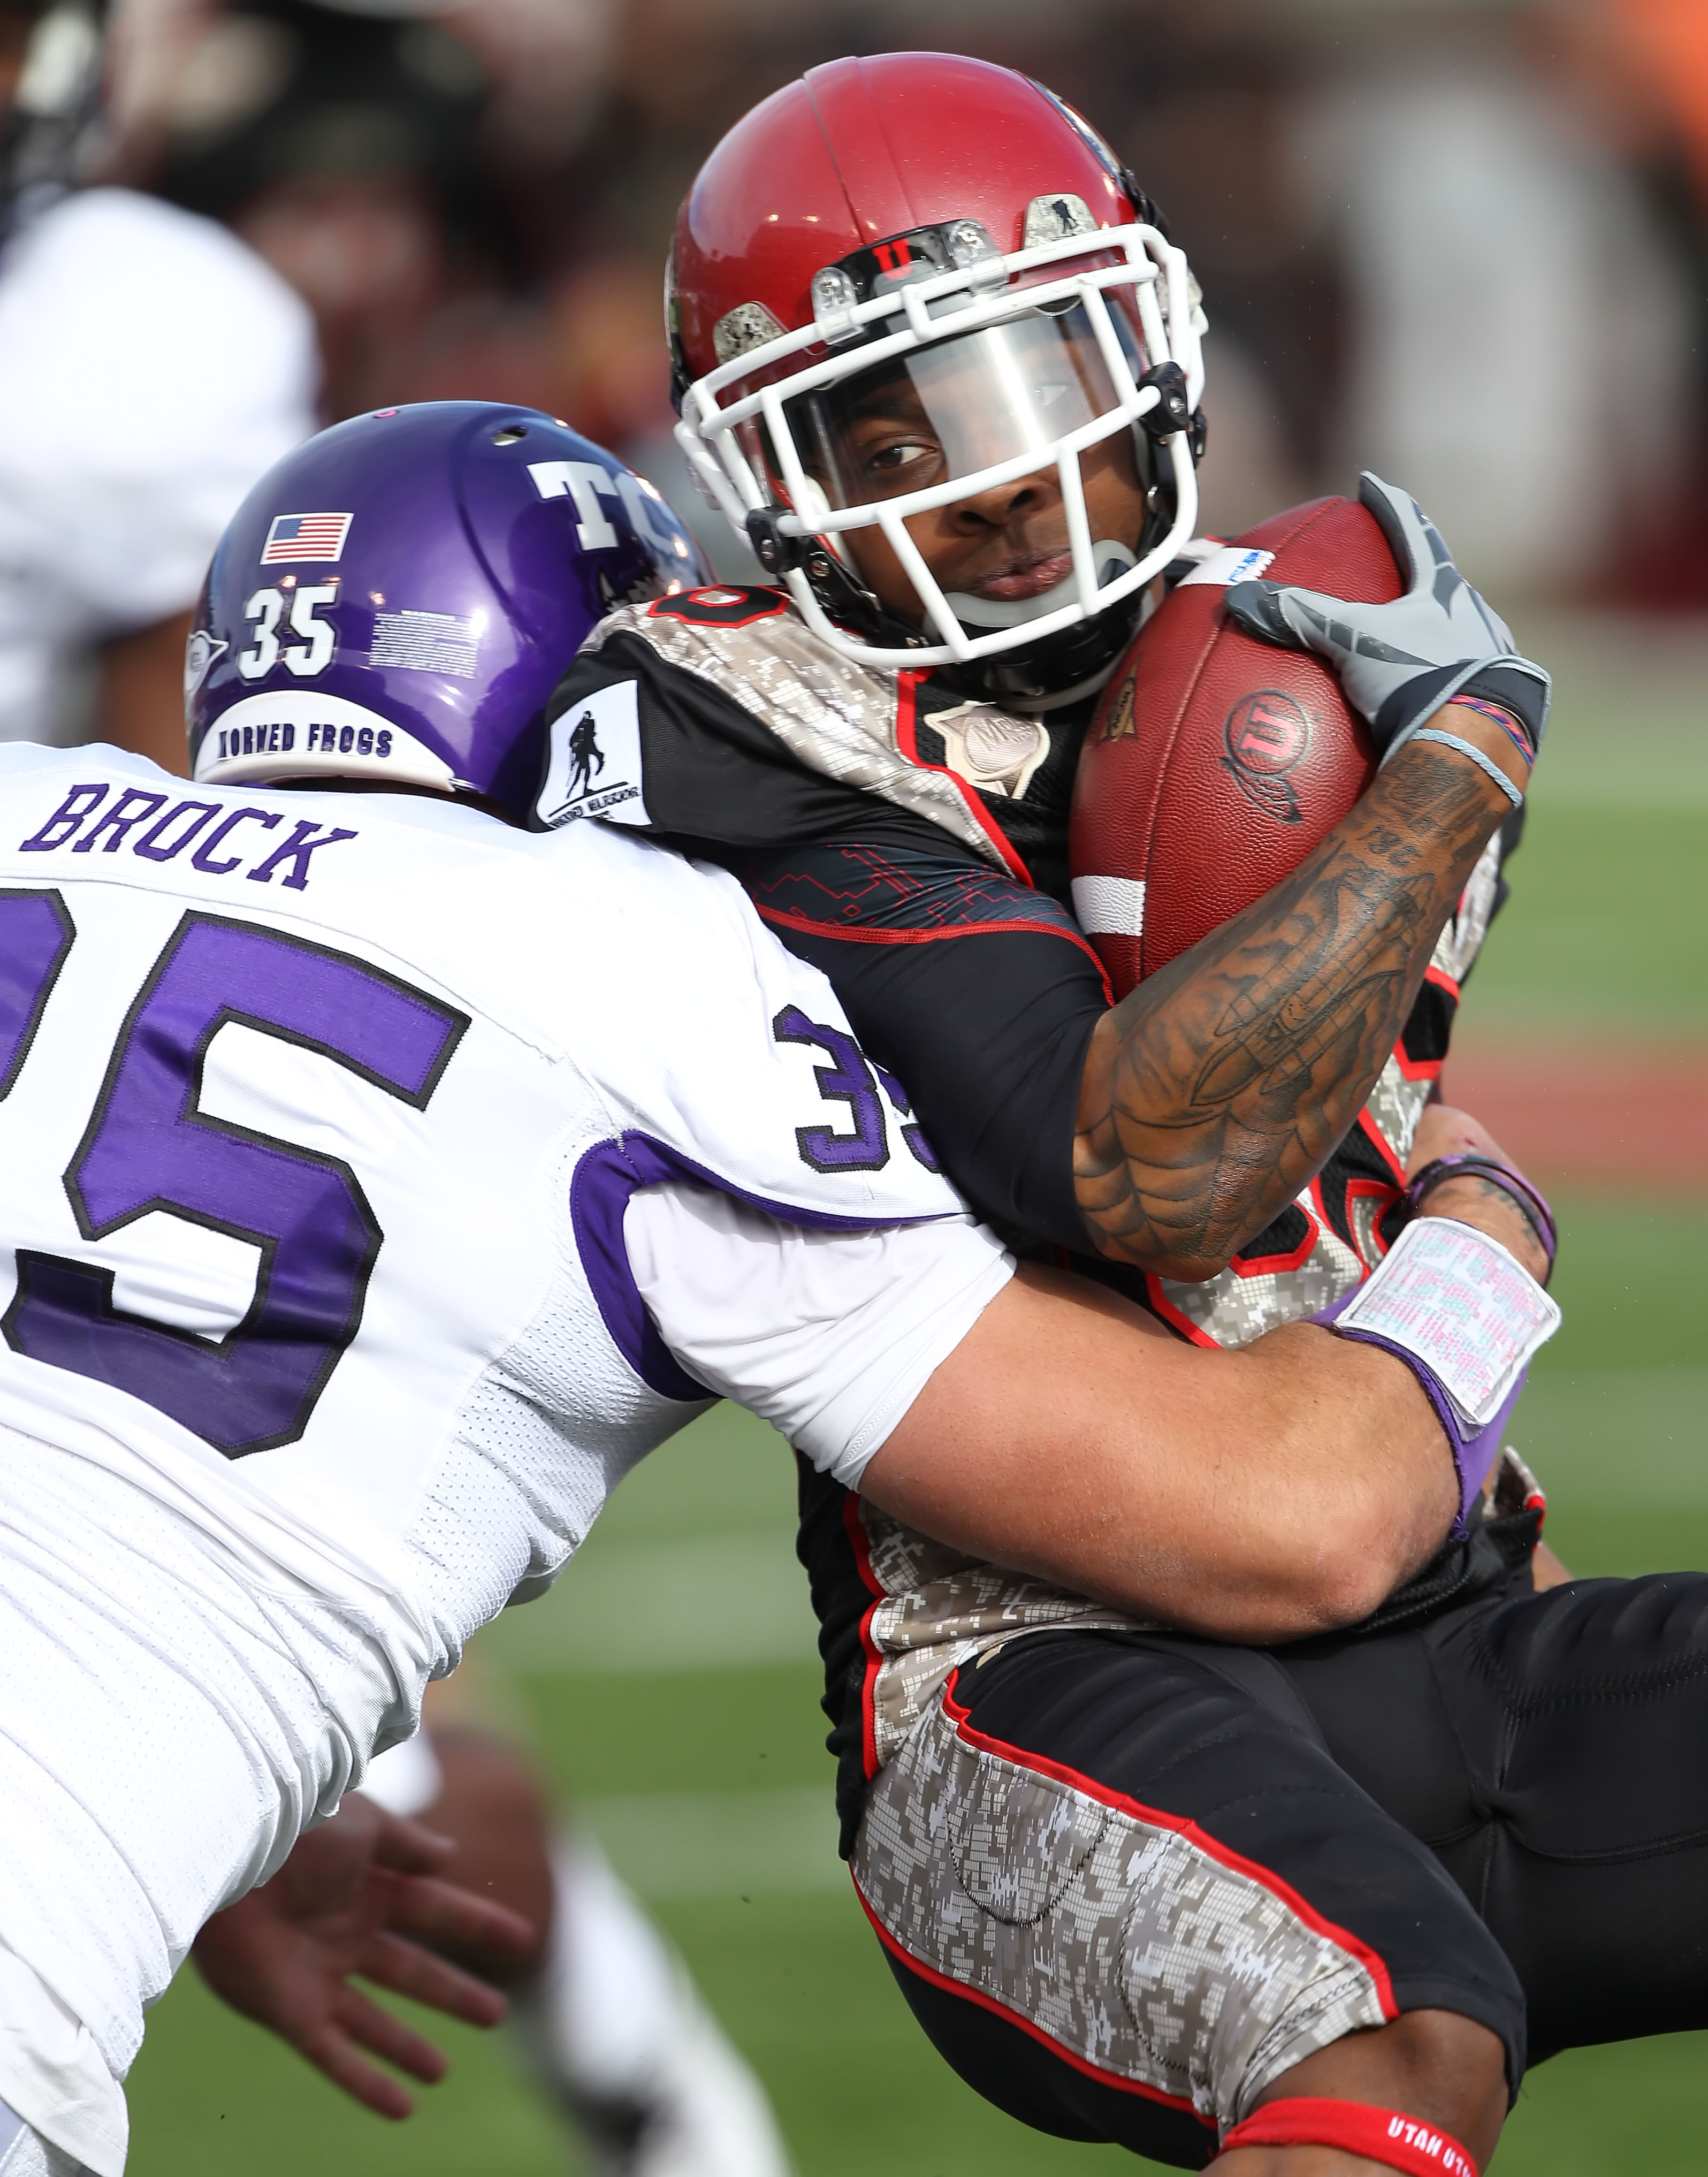 SALT LAKE CITY, UT - NOVEMBER 6: Jereme Brooks #85 of the Utah Utes is hit by Tanner Brock #35 of the TCU Horned Frogs during the first half of an NCAA football game November 6, 2010 at Rice-Eccles Stadium in Salt Lake City, Utah. (Photo by George Frey/Ge